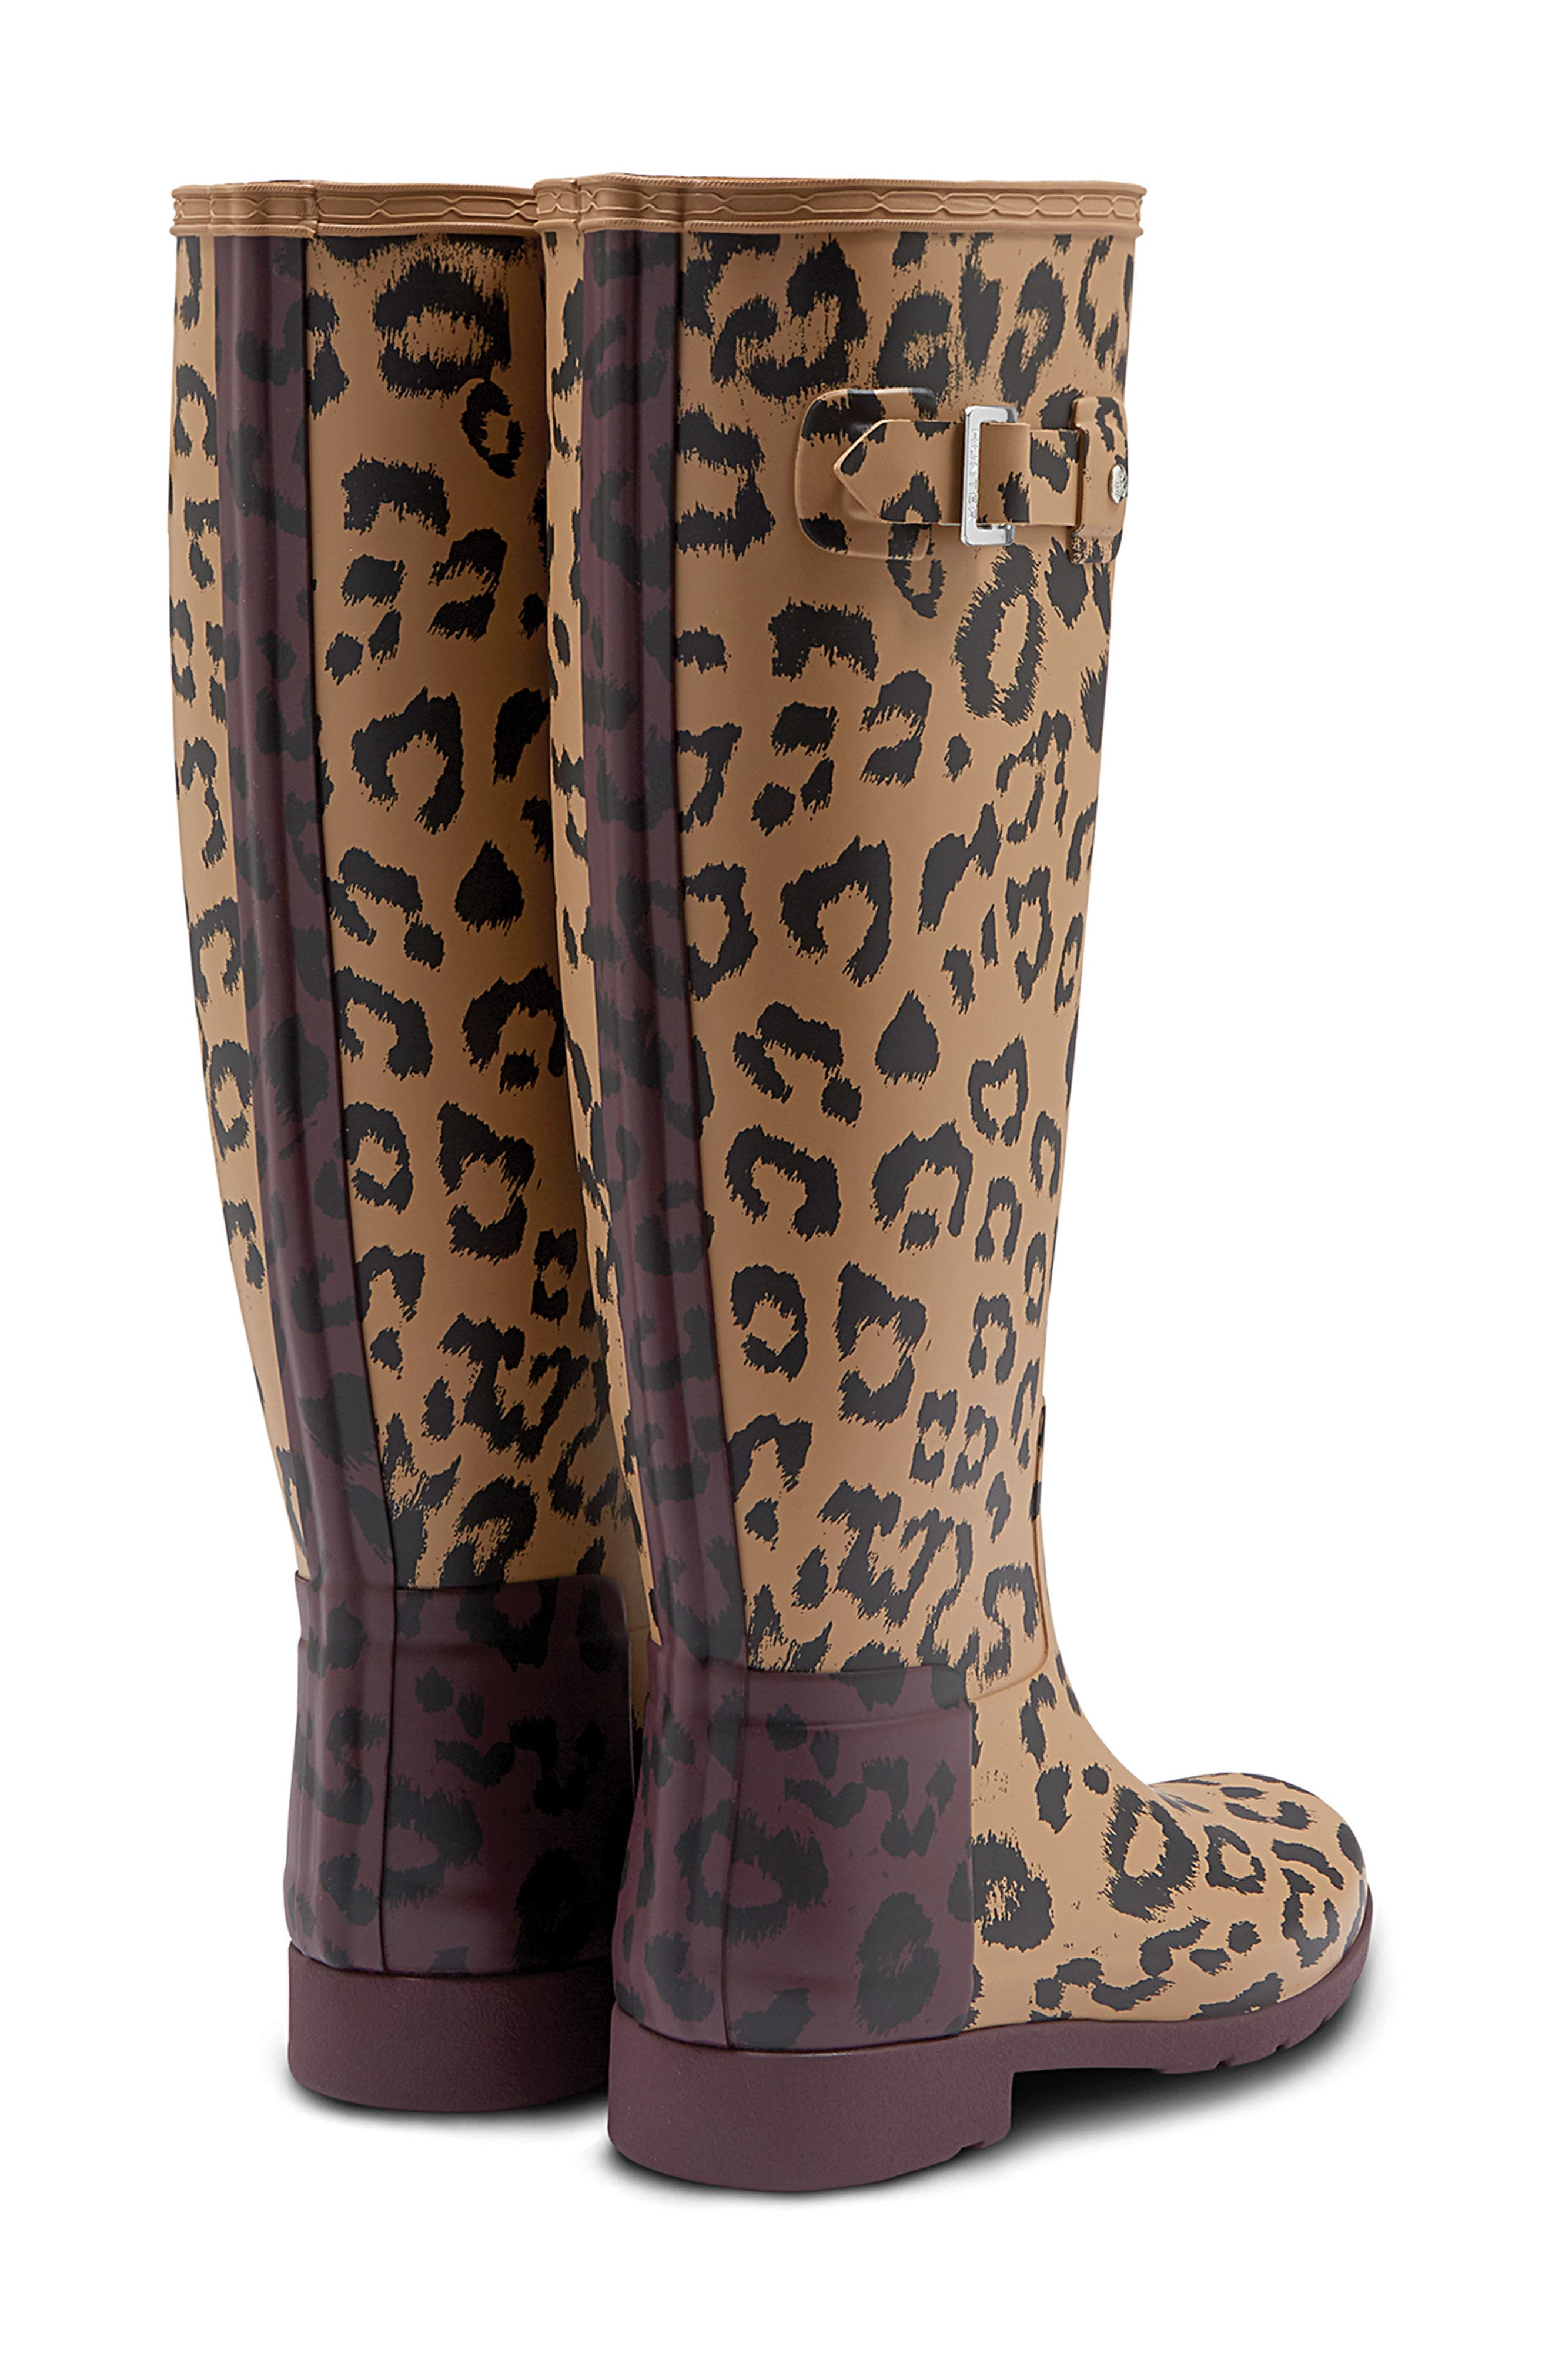 Original Leopard Print Refined Tall Waterproof Rain Boot,                             Alternate thumbnail 2, color,                             TAWNY/ OXBLOOD RUBBER